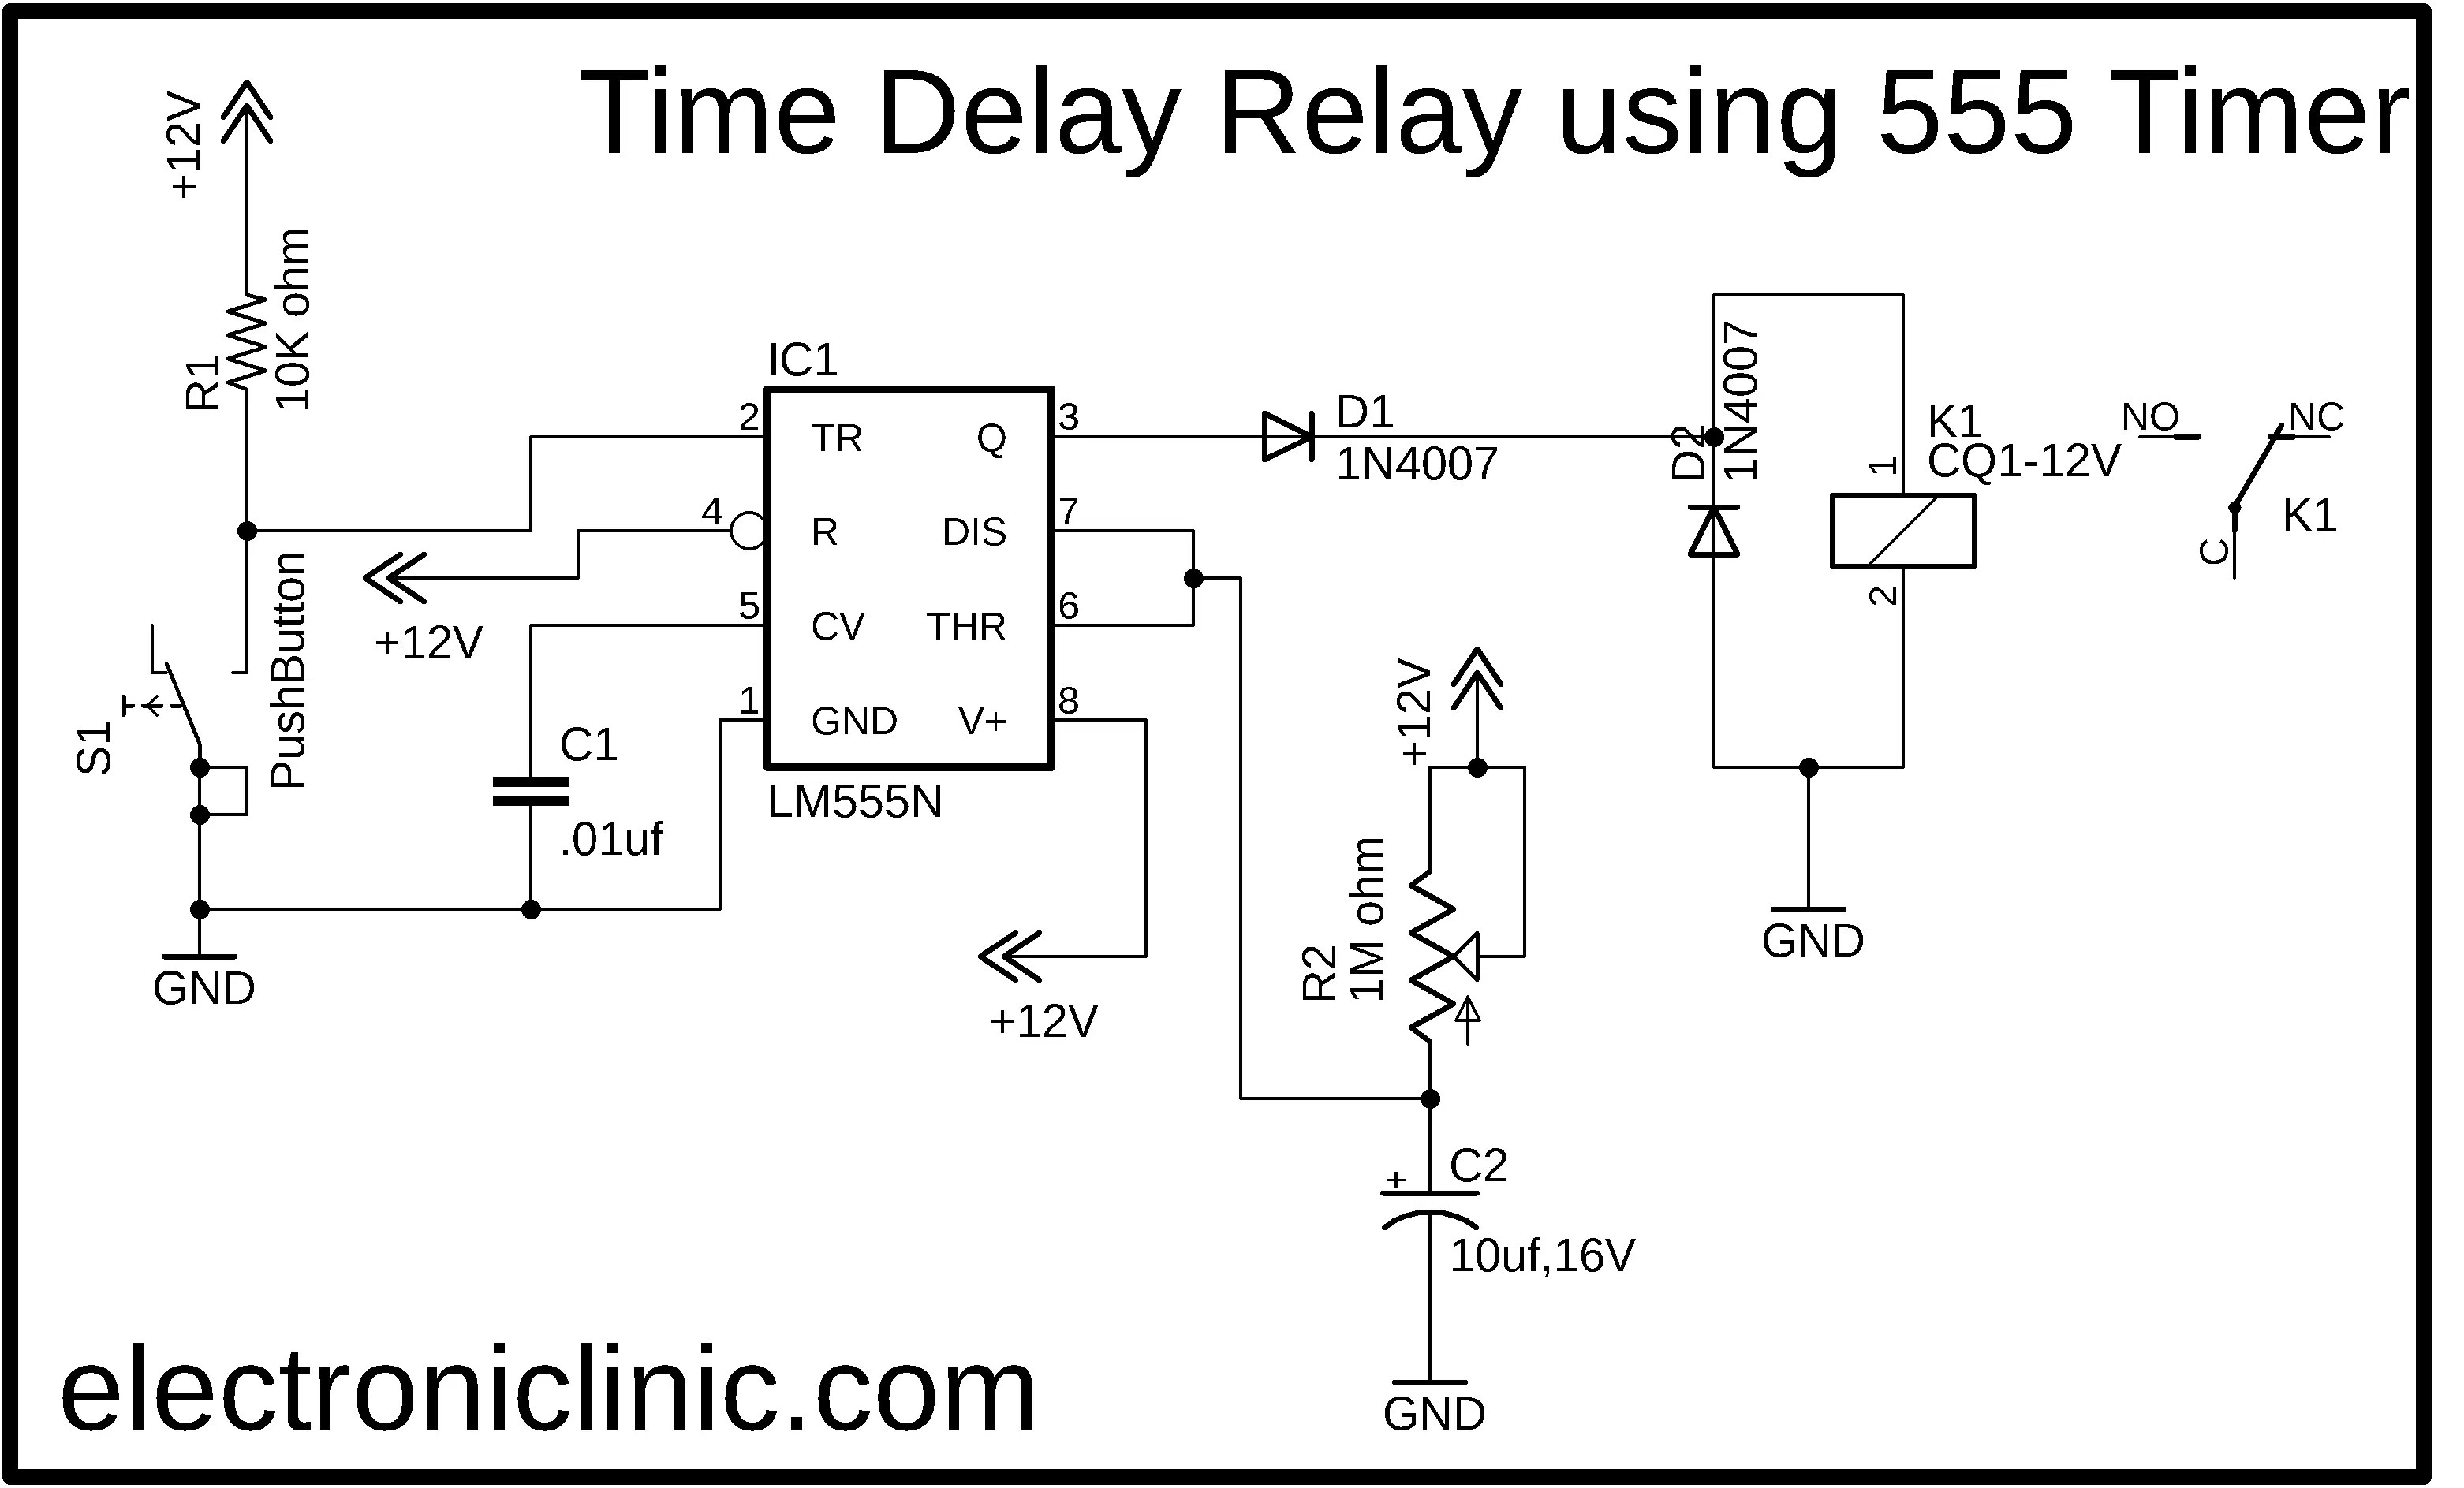 Time Delay Relay using 40 Timer, Proteus Simulation and PCB Design